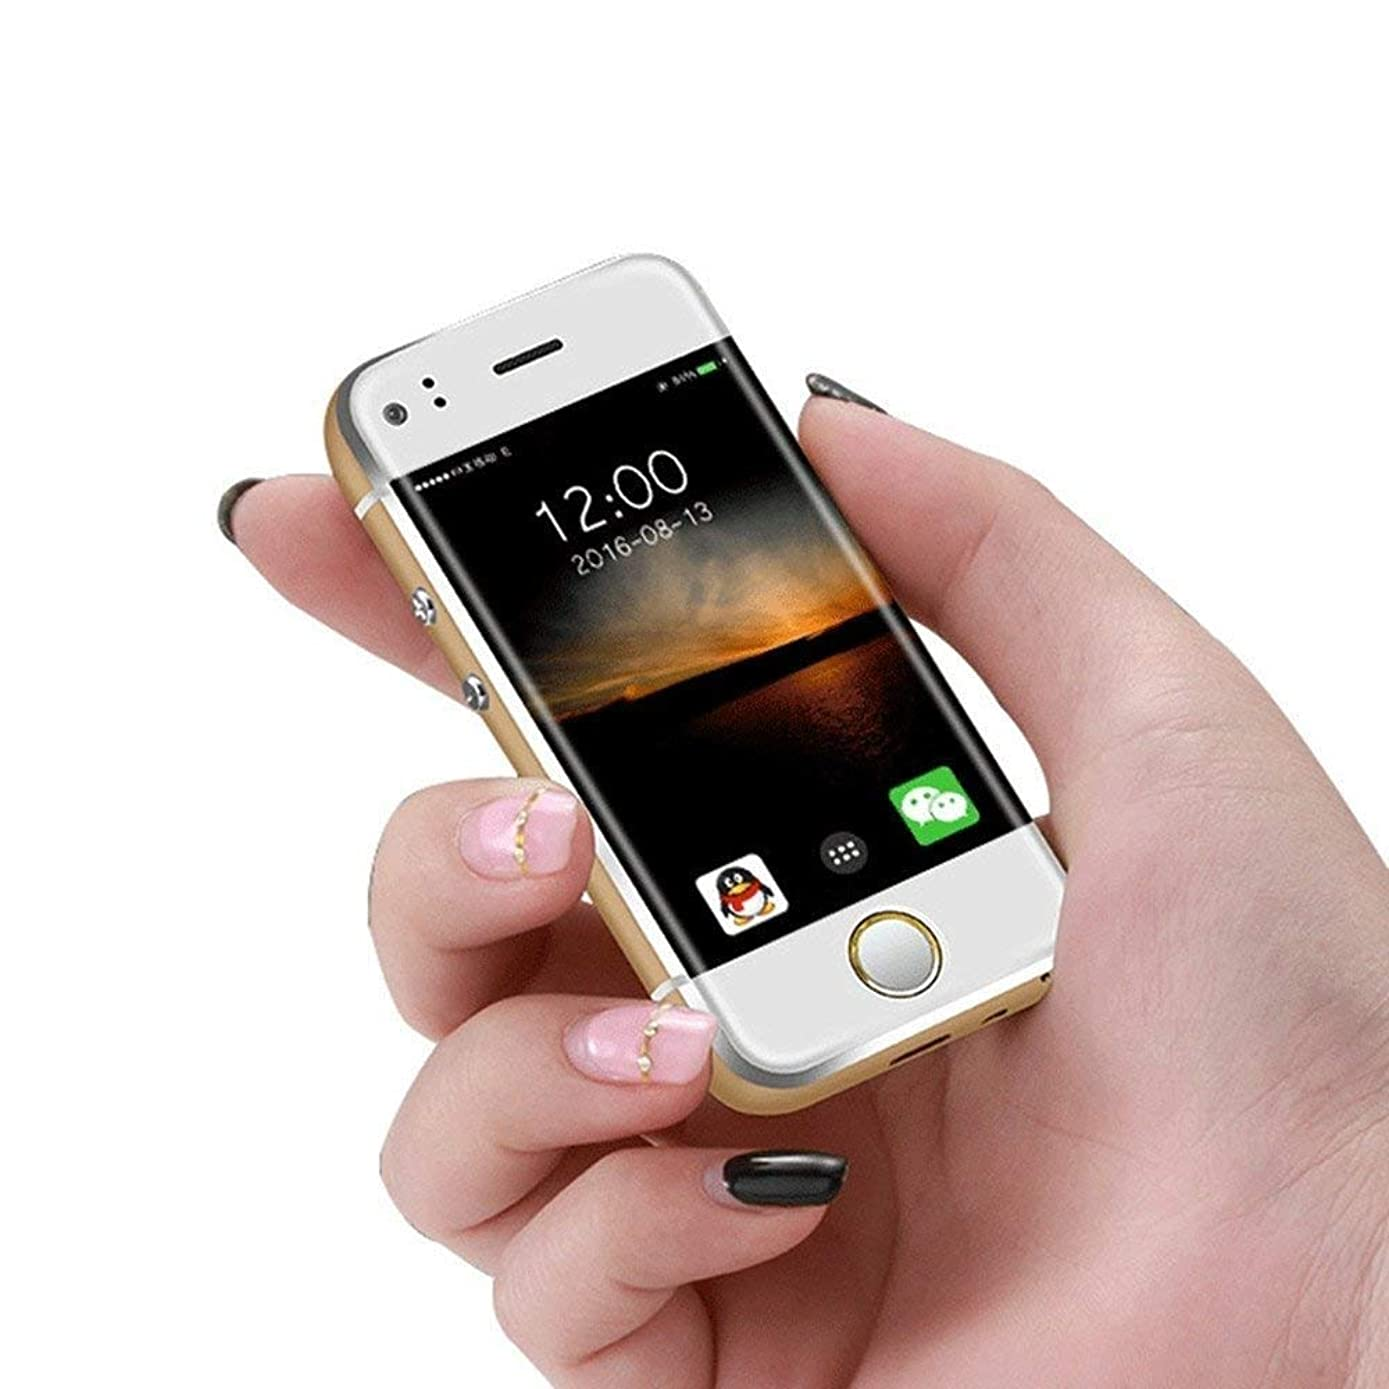 Mini Cell Phone SOYES Smartphone Android mobile phone Mtk6572 CPU Wifi 2.45 Inch Capacitive Screen Dual SIM Children's Phone Gift(gold)